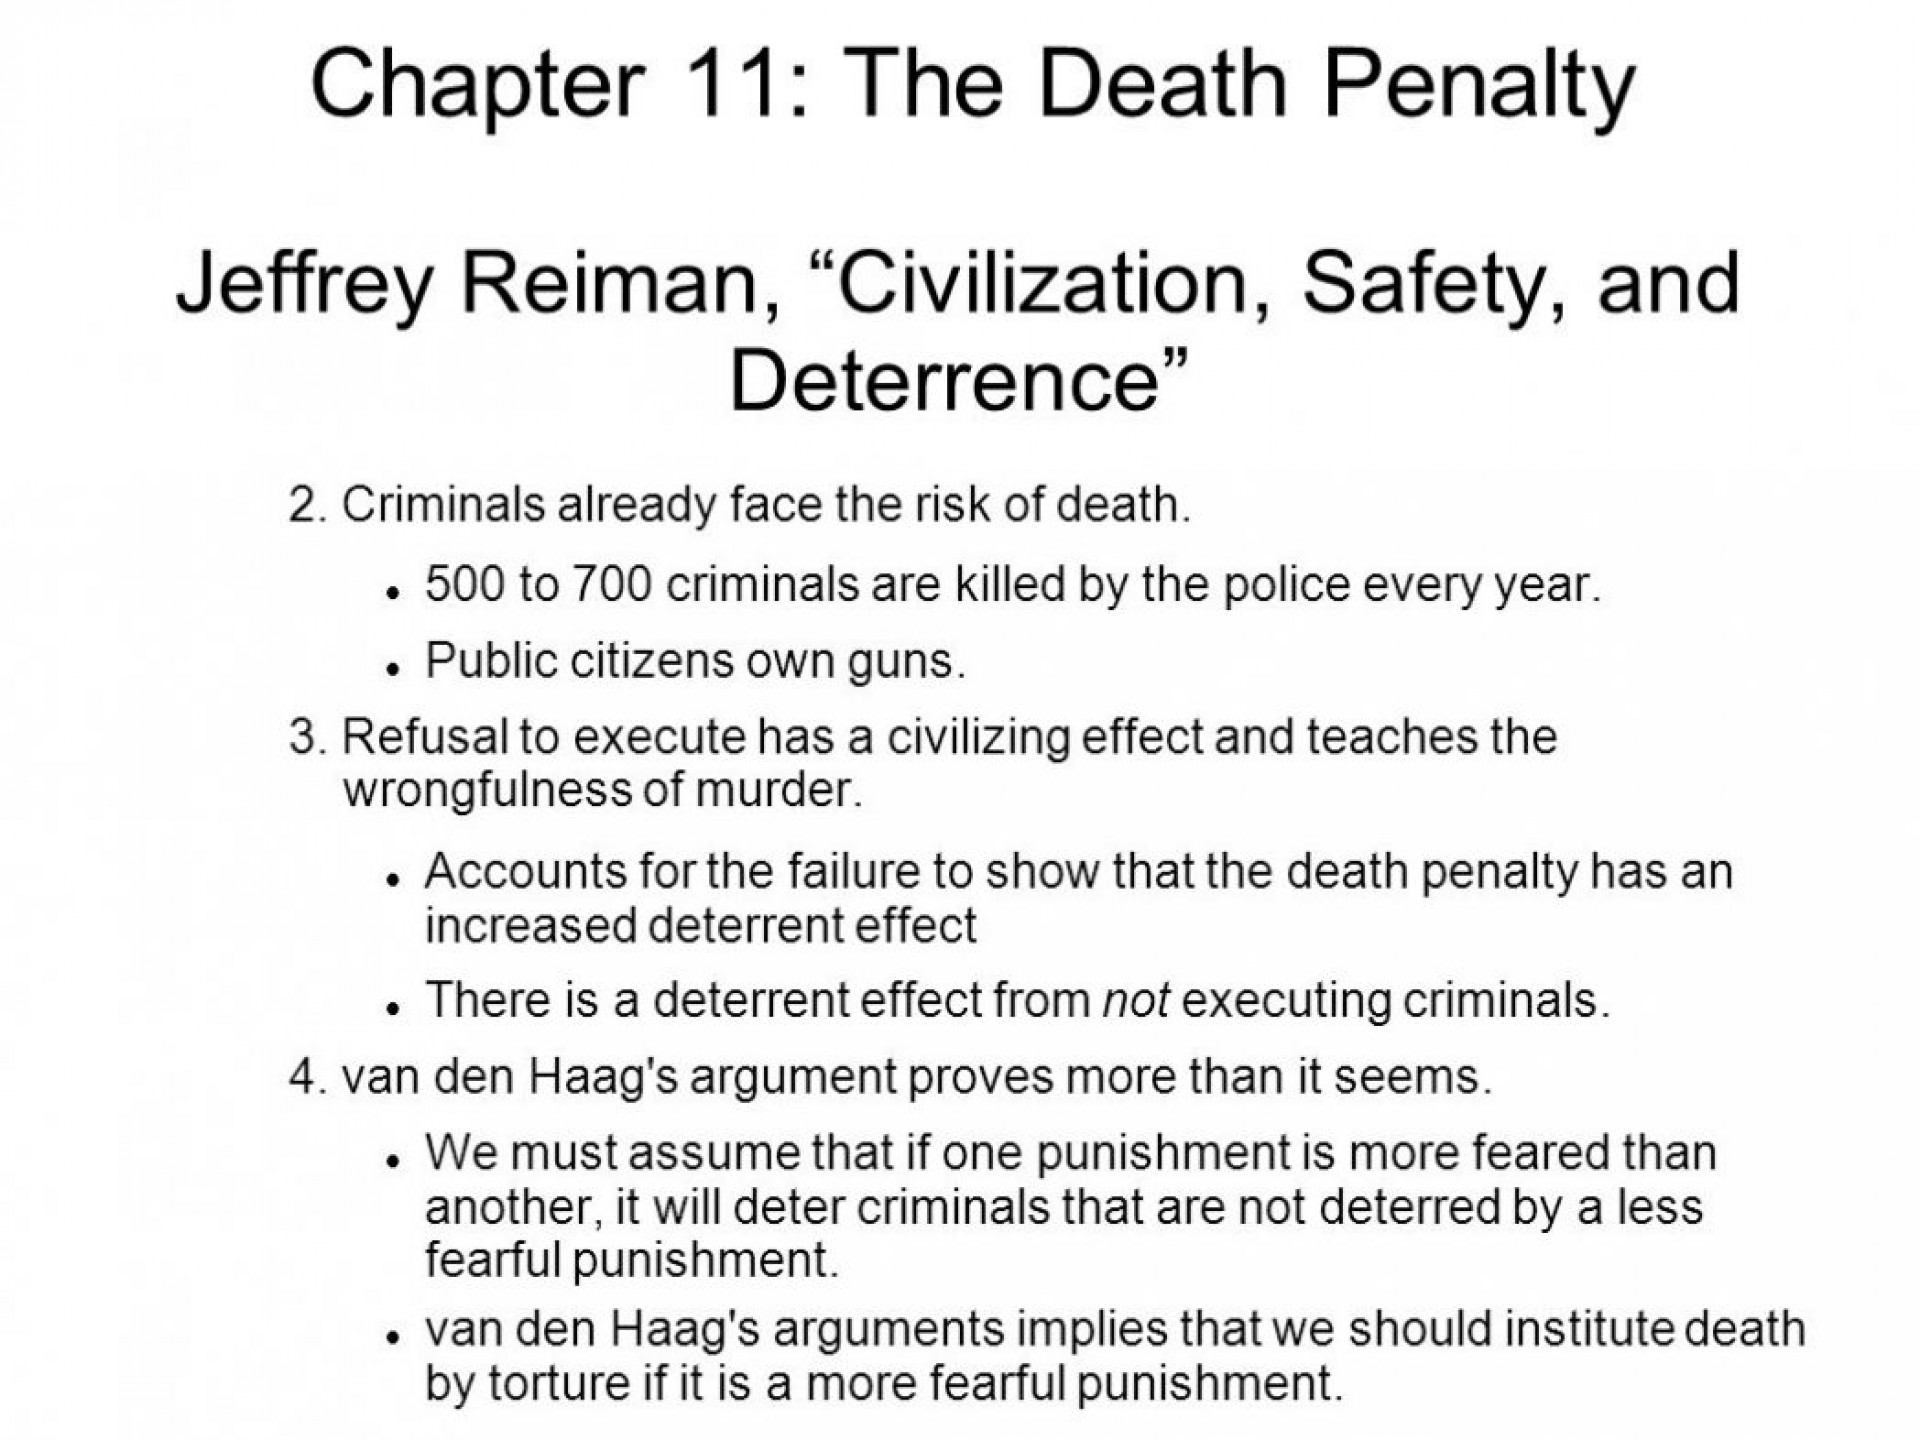 023 Argument Against Death Penalty Essay Fake Writer Arguments For Capital Punishment Sli 1048x786 Breathtaking Advantages And Disadvantages Of Cons 1920